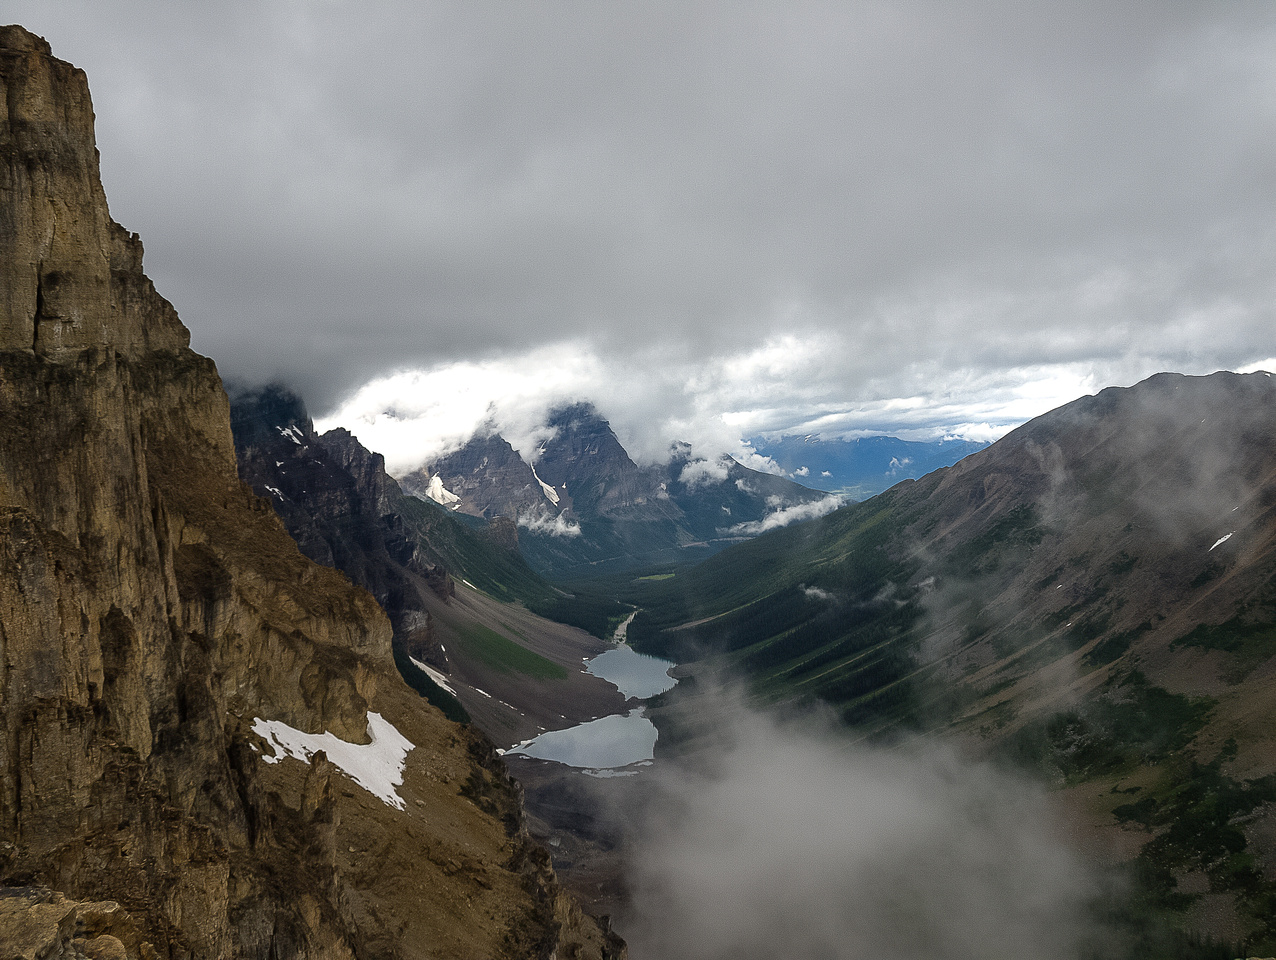 Moody views over the Consolation Lakes.